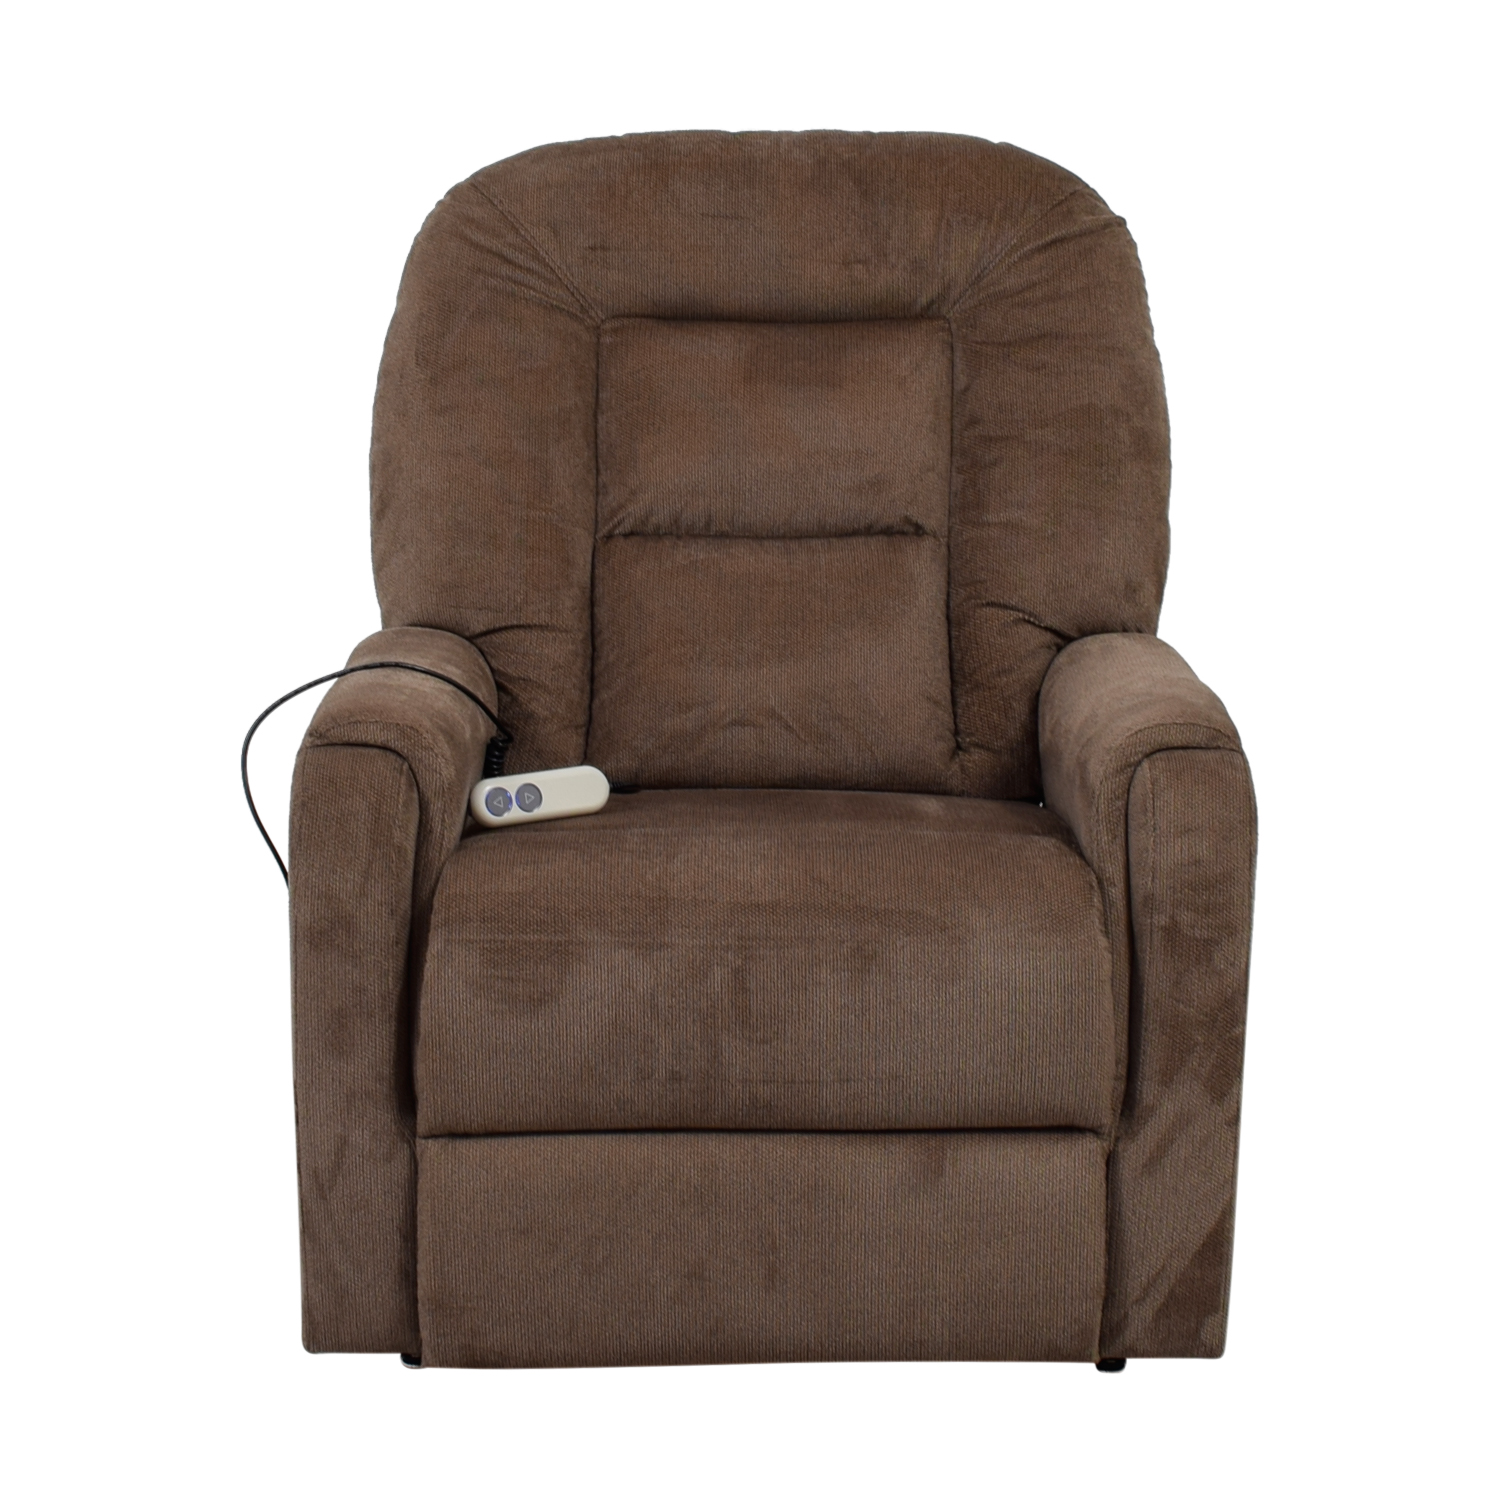 Taupe Lift to Standing Position Recliner Chair sale